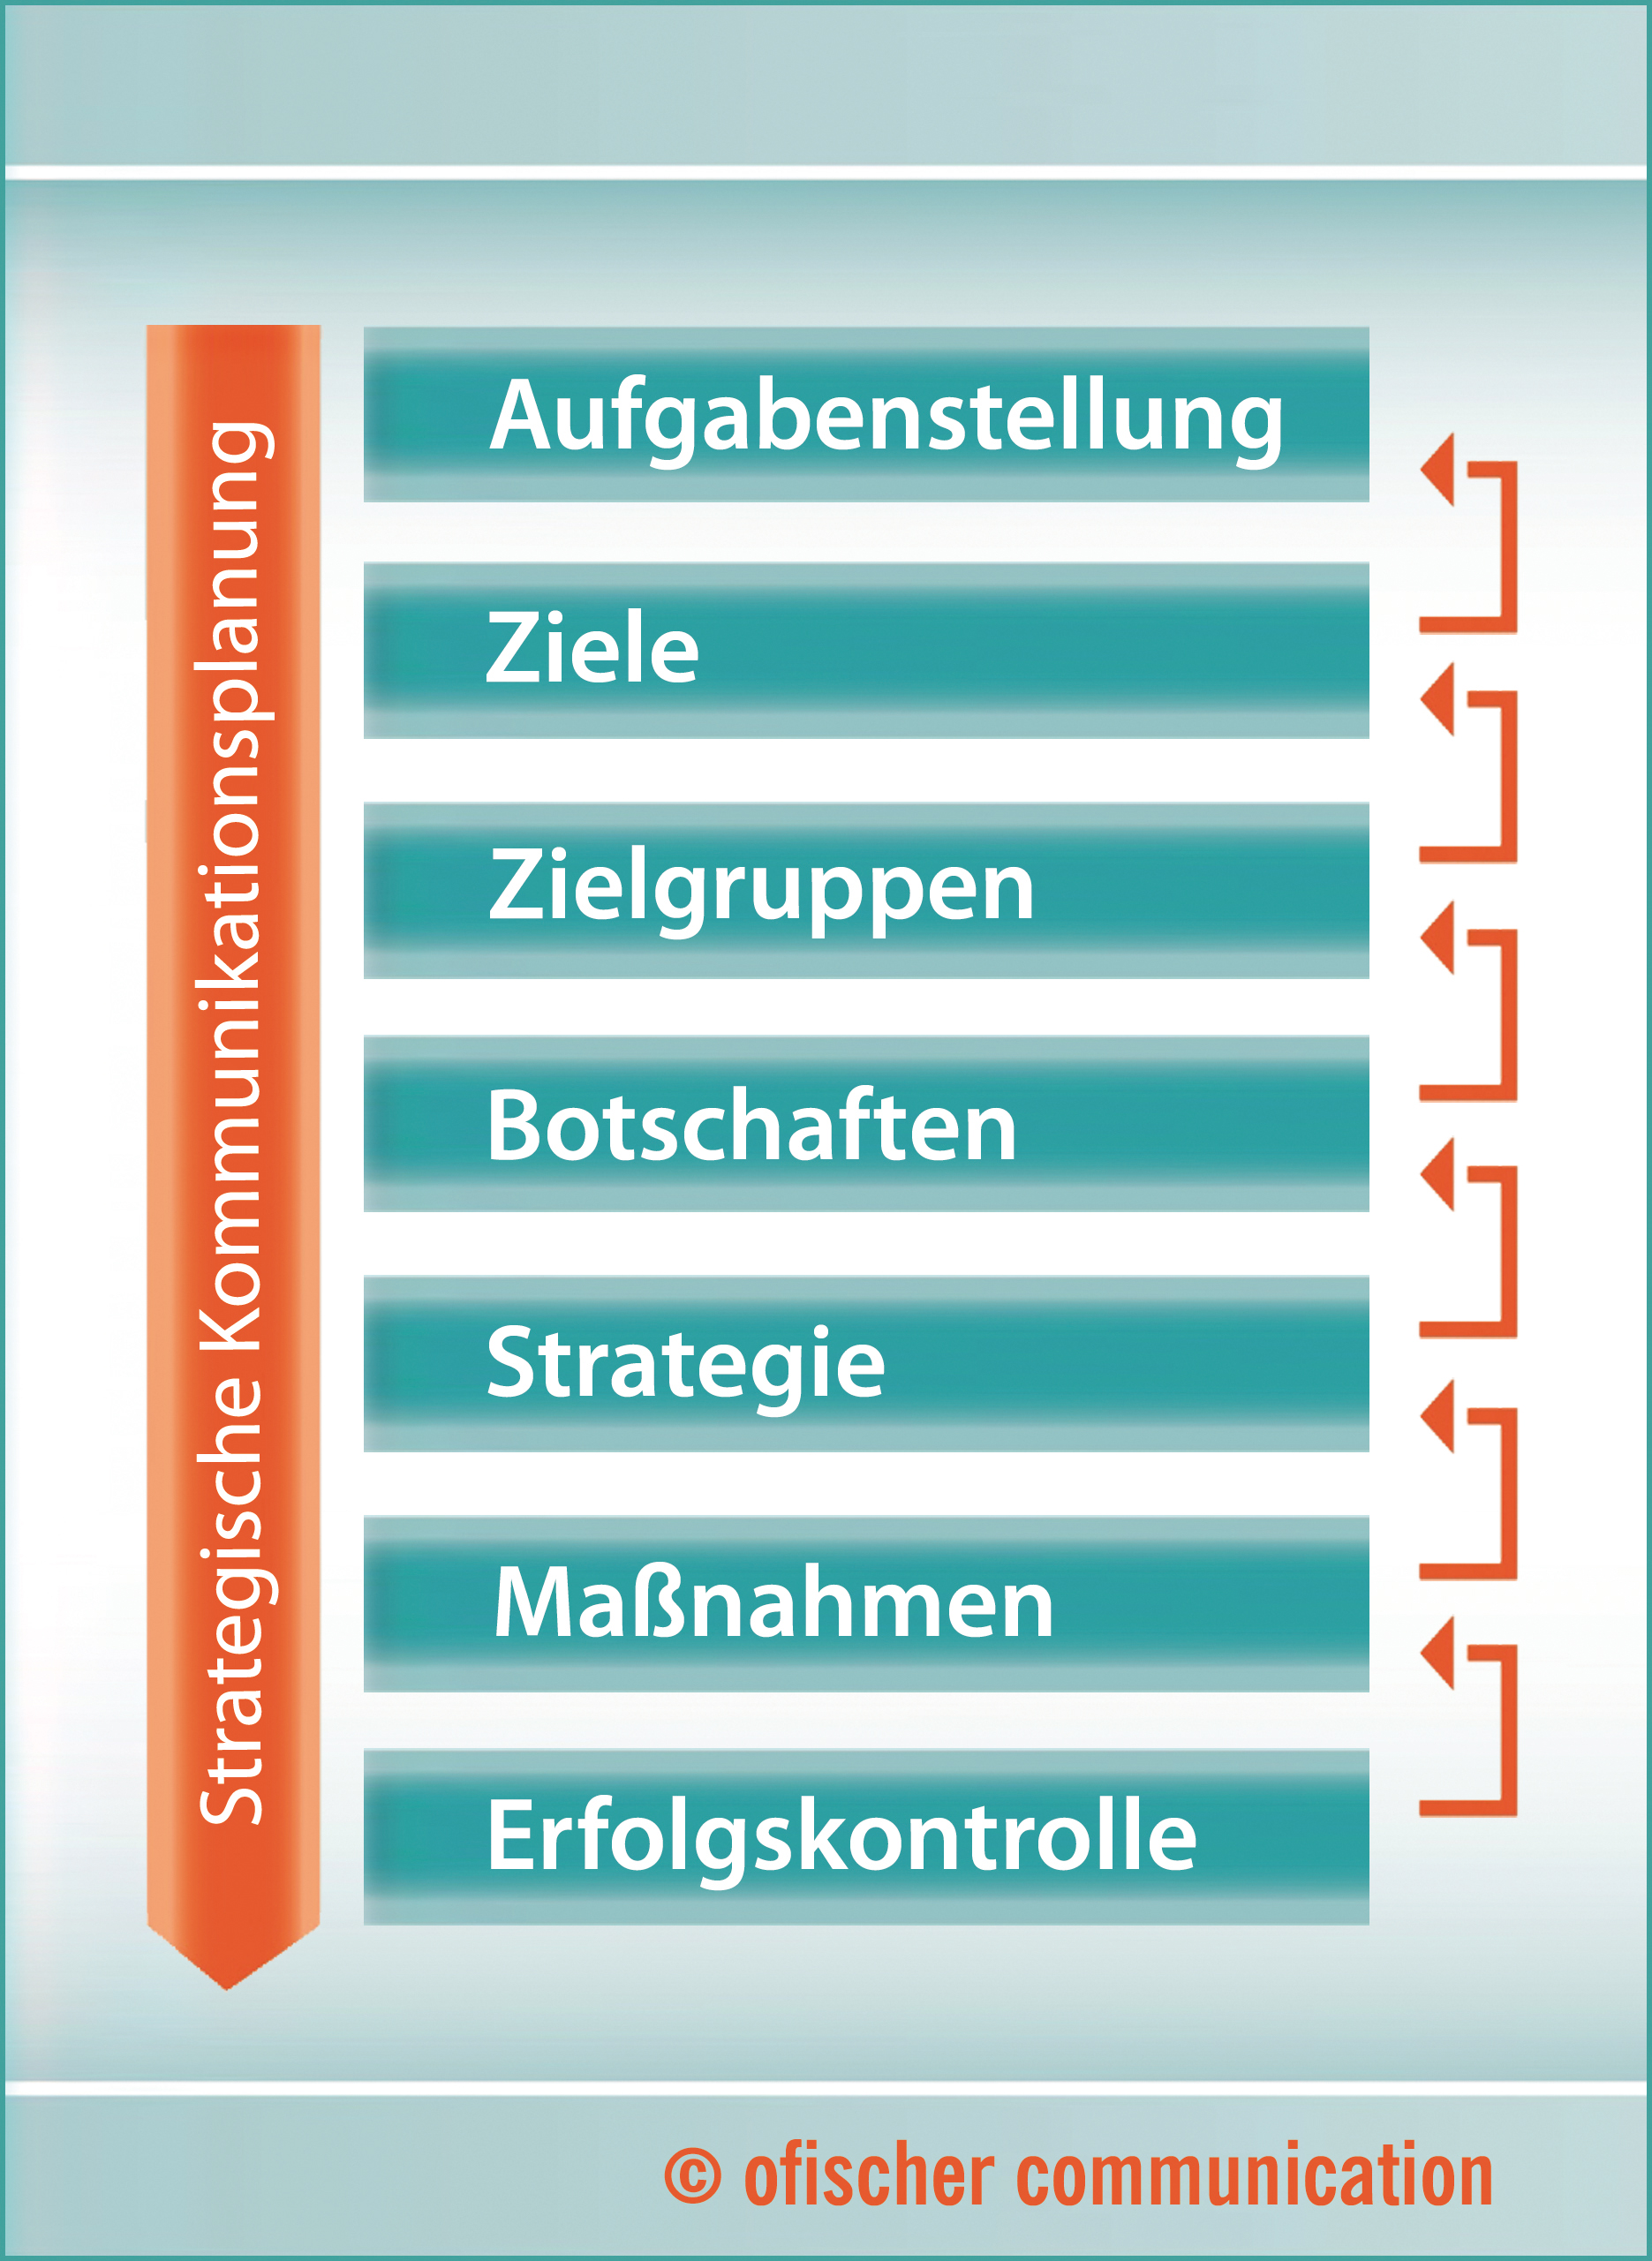 Elemente strategischer b2b-Marketingplanung und Marketingstrategien.